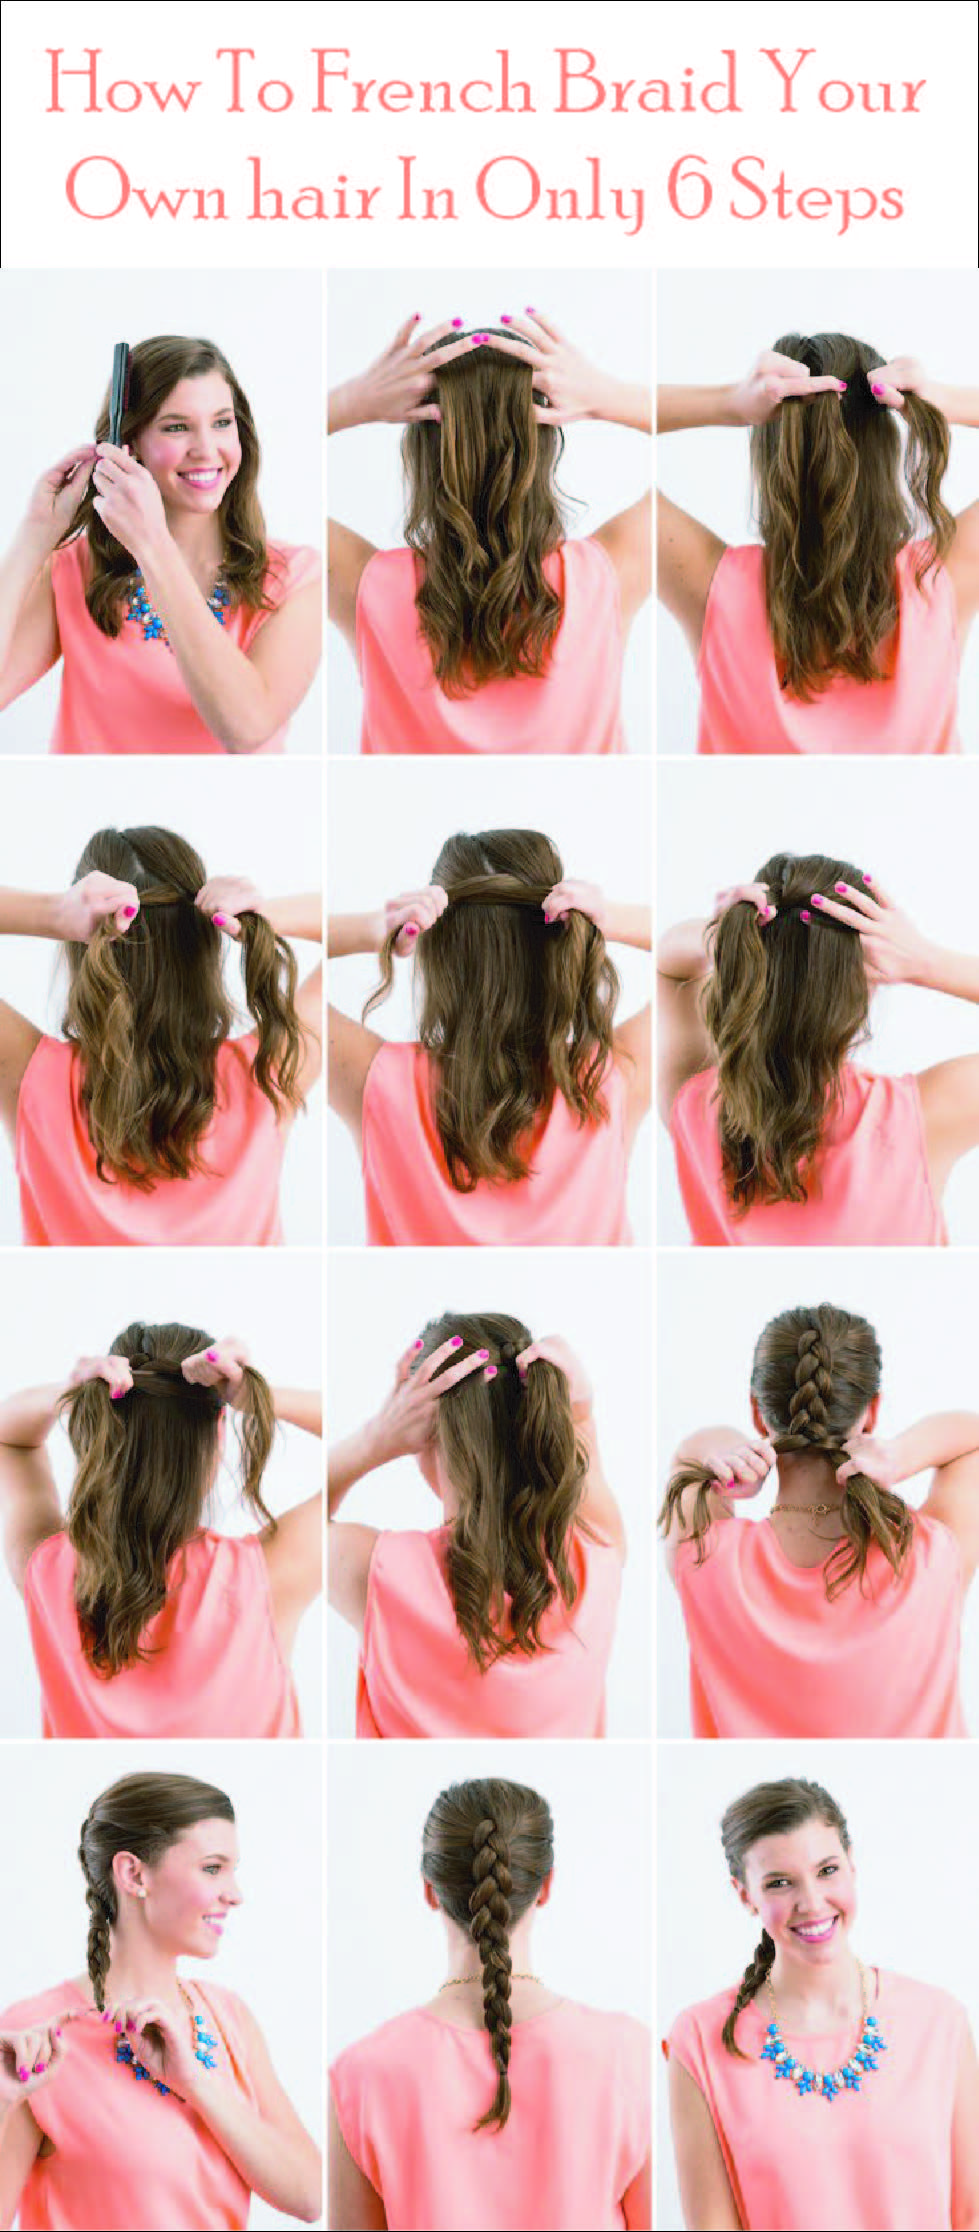 Fancy French Braids Want To Know How To French Braid Your Hair French Braids Are Very Braided Hairstyles Easy French Braid Short Hair Braids For Short Hair